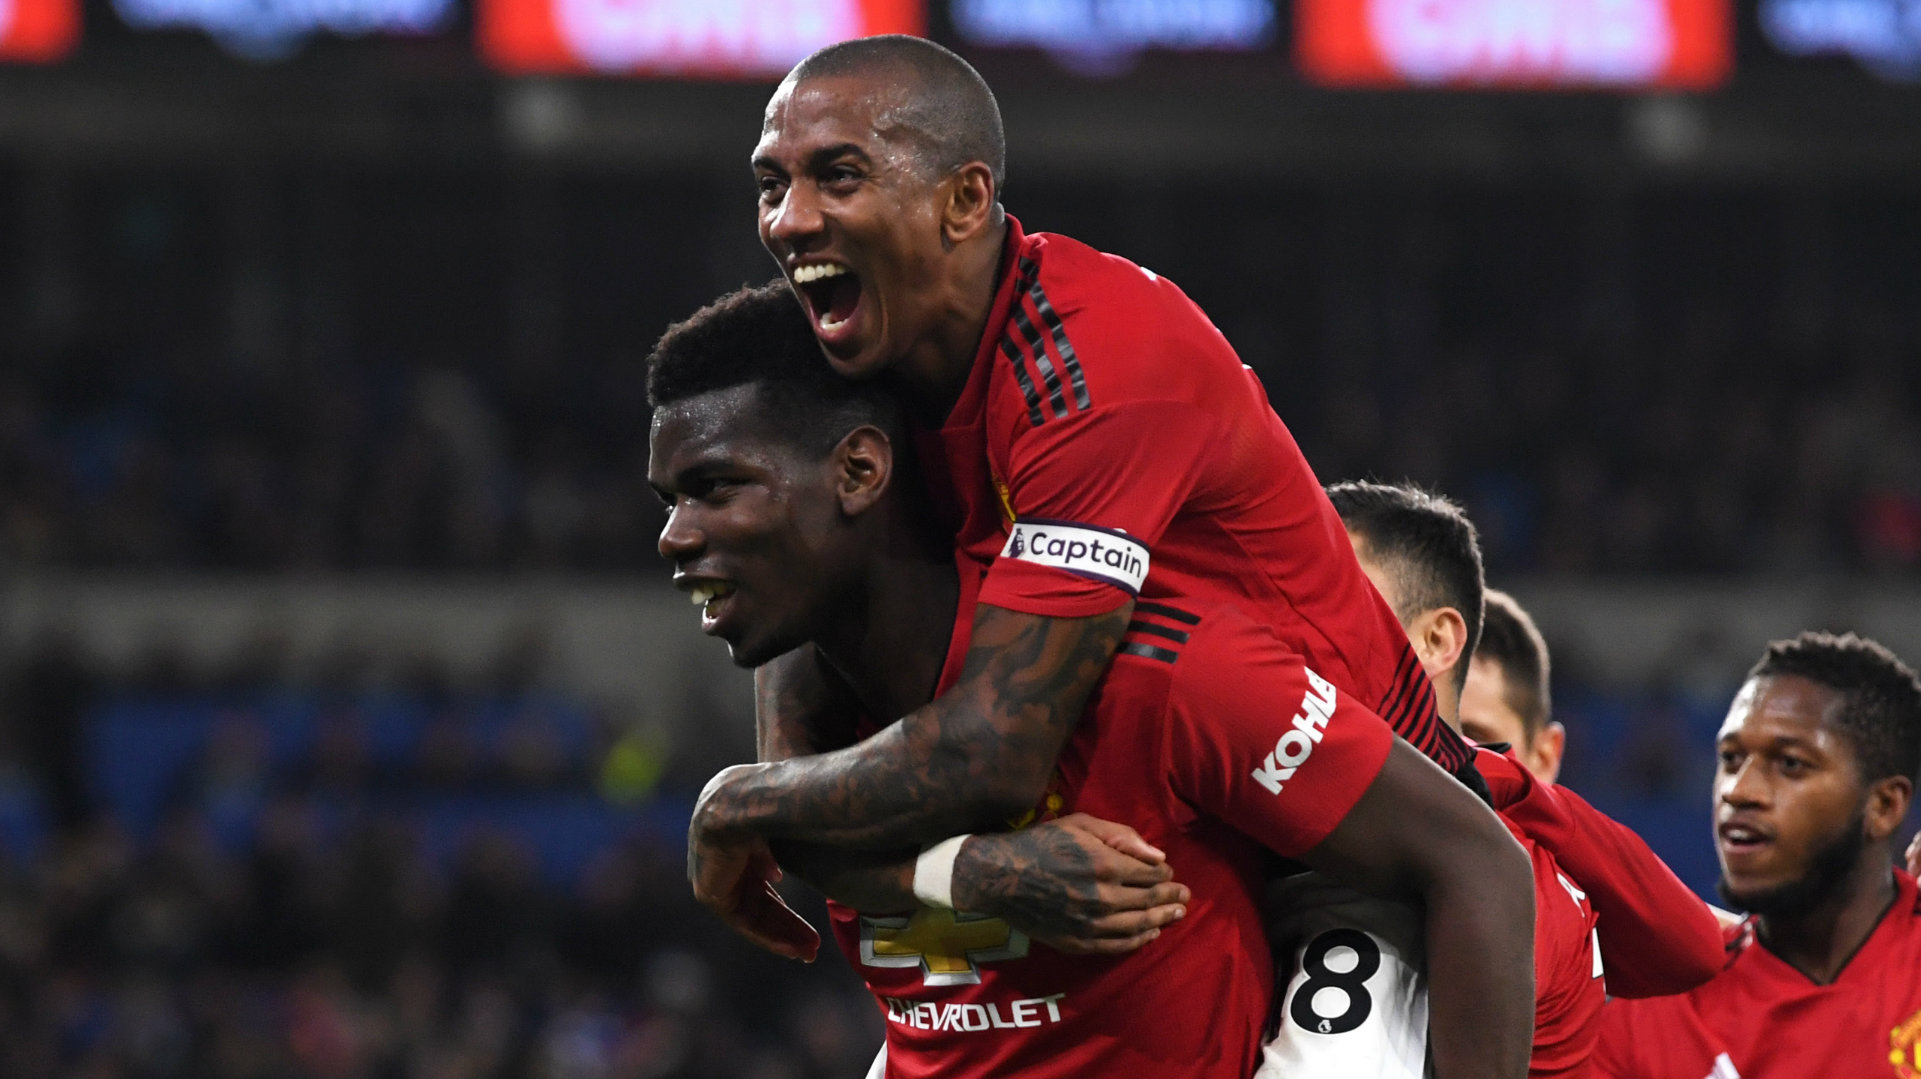 Paul Pogba Ashley Young Cardiff vs Manchester United Premier League 2018-19